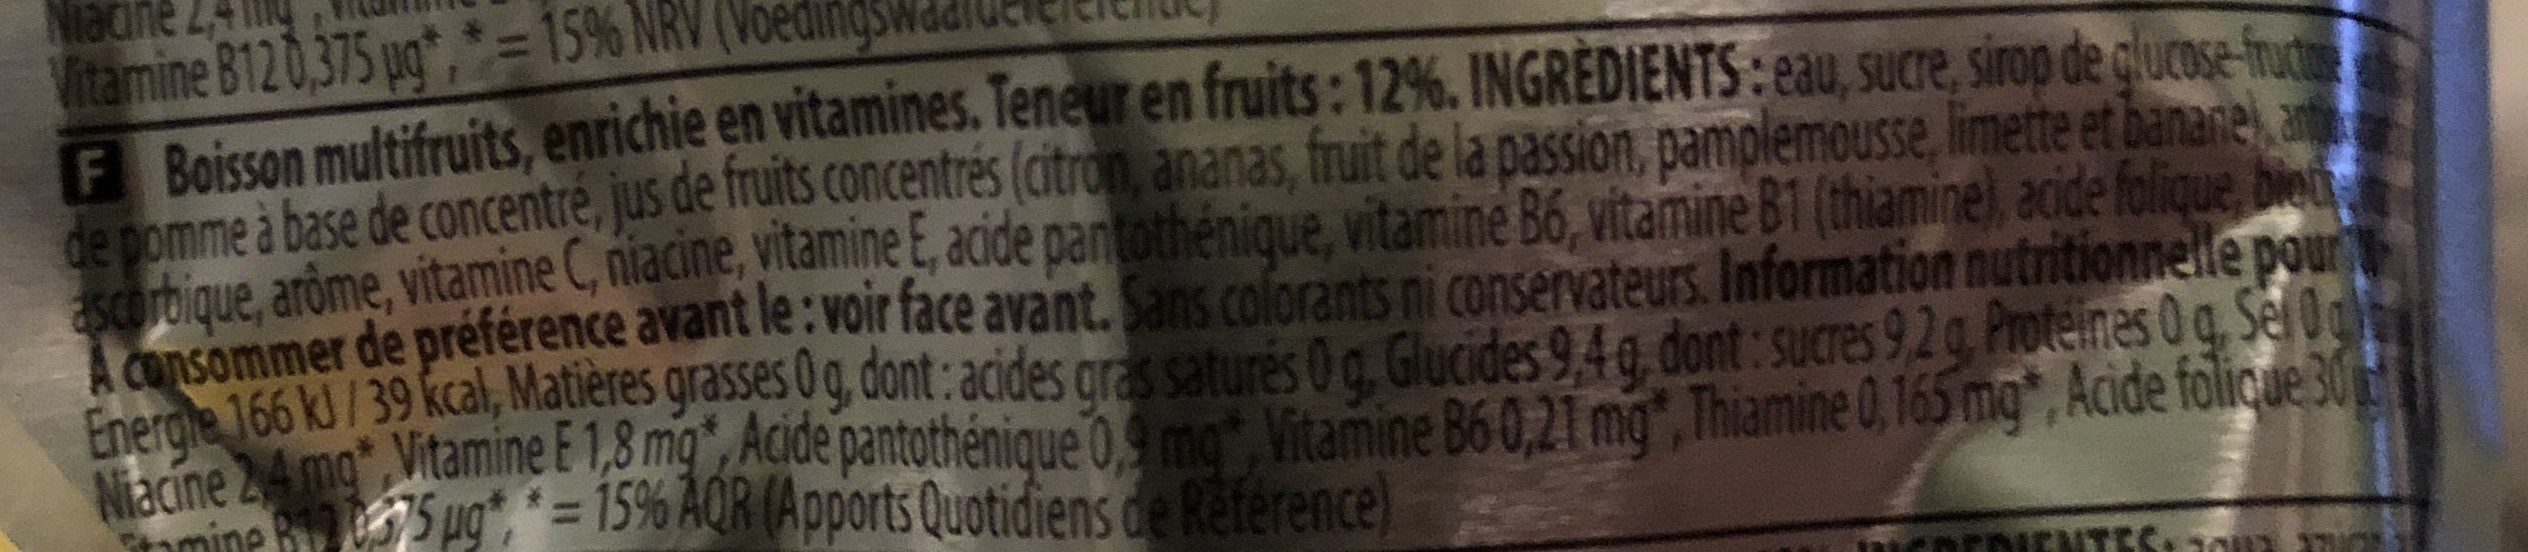 Multifruit Juice Drink - Ingrédients